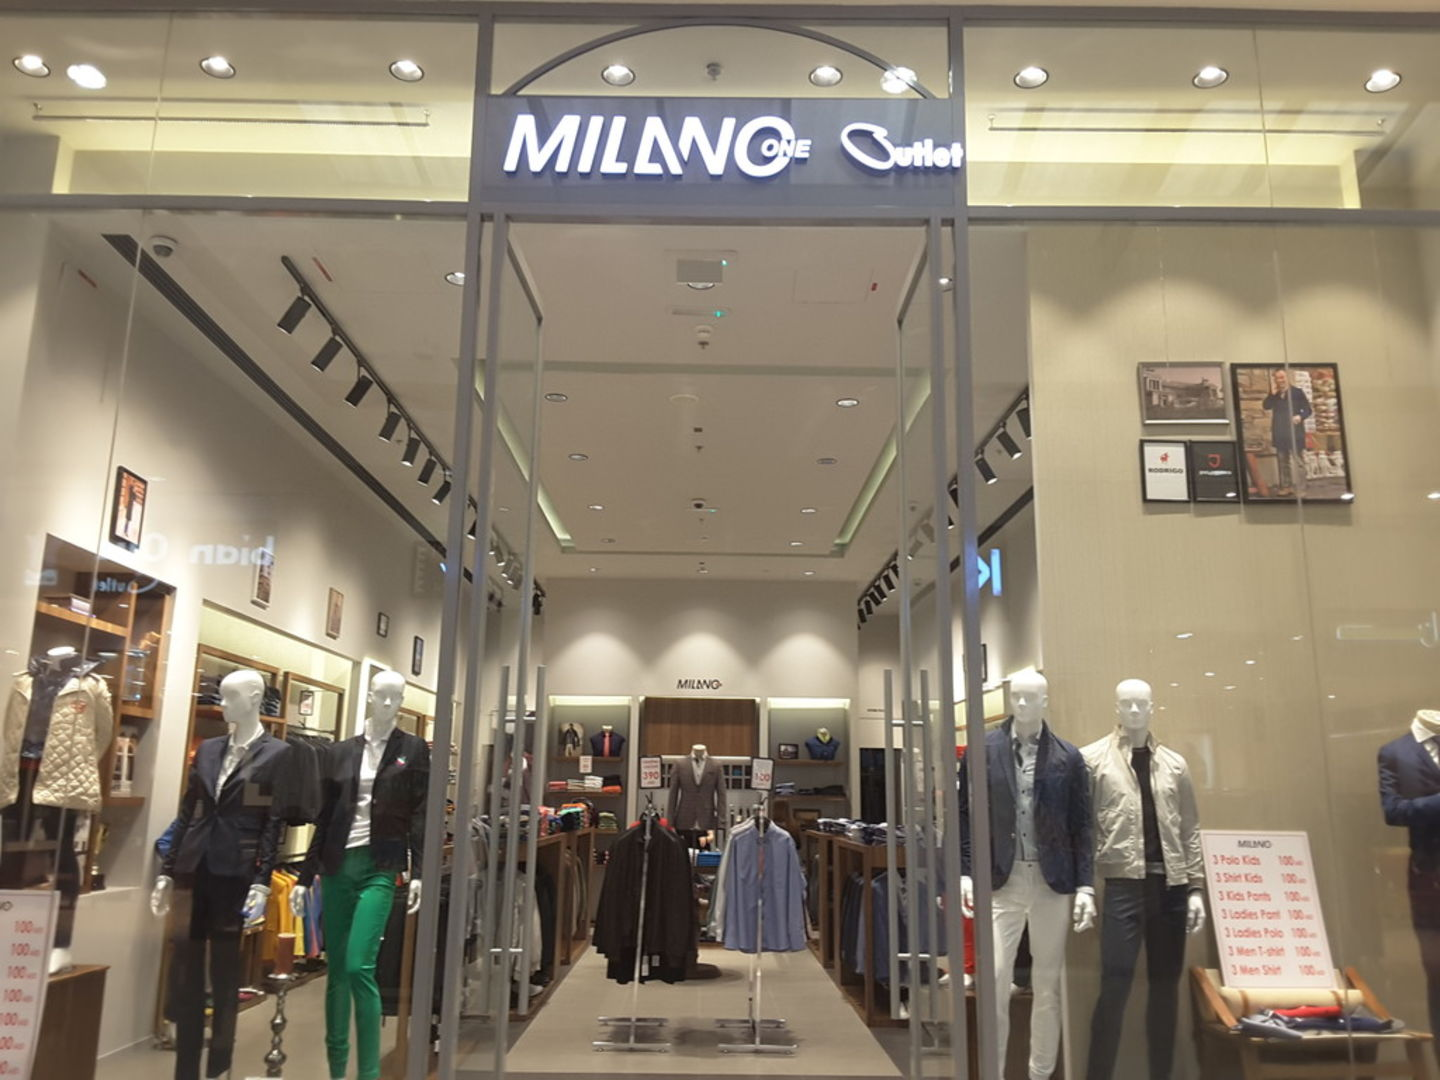 Milano One Outlet, (Apparel) in Umm Nahad 1, Dubai